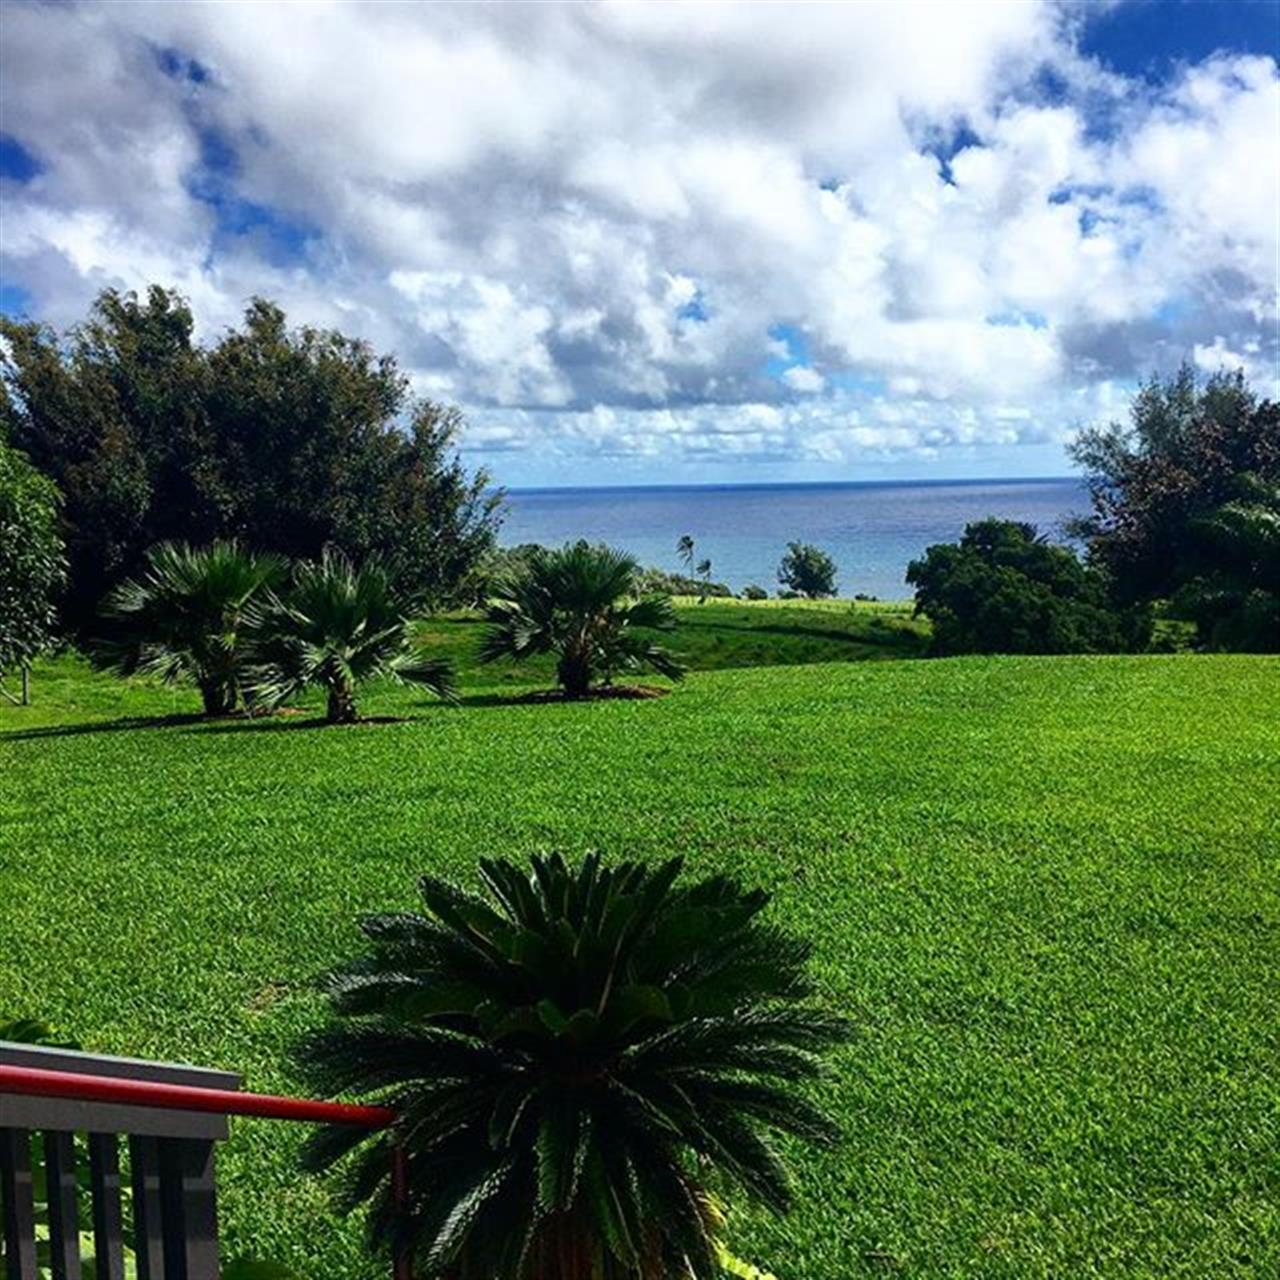 Perfect summer day touring lovely homes on the North Kohala Realtor Caravan! ?? The views are amazing! #northkohala #realestate